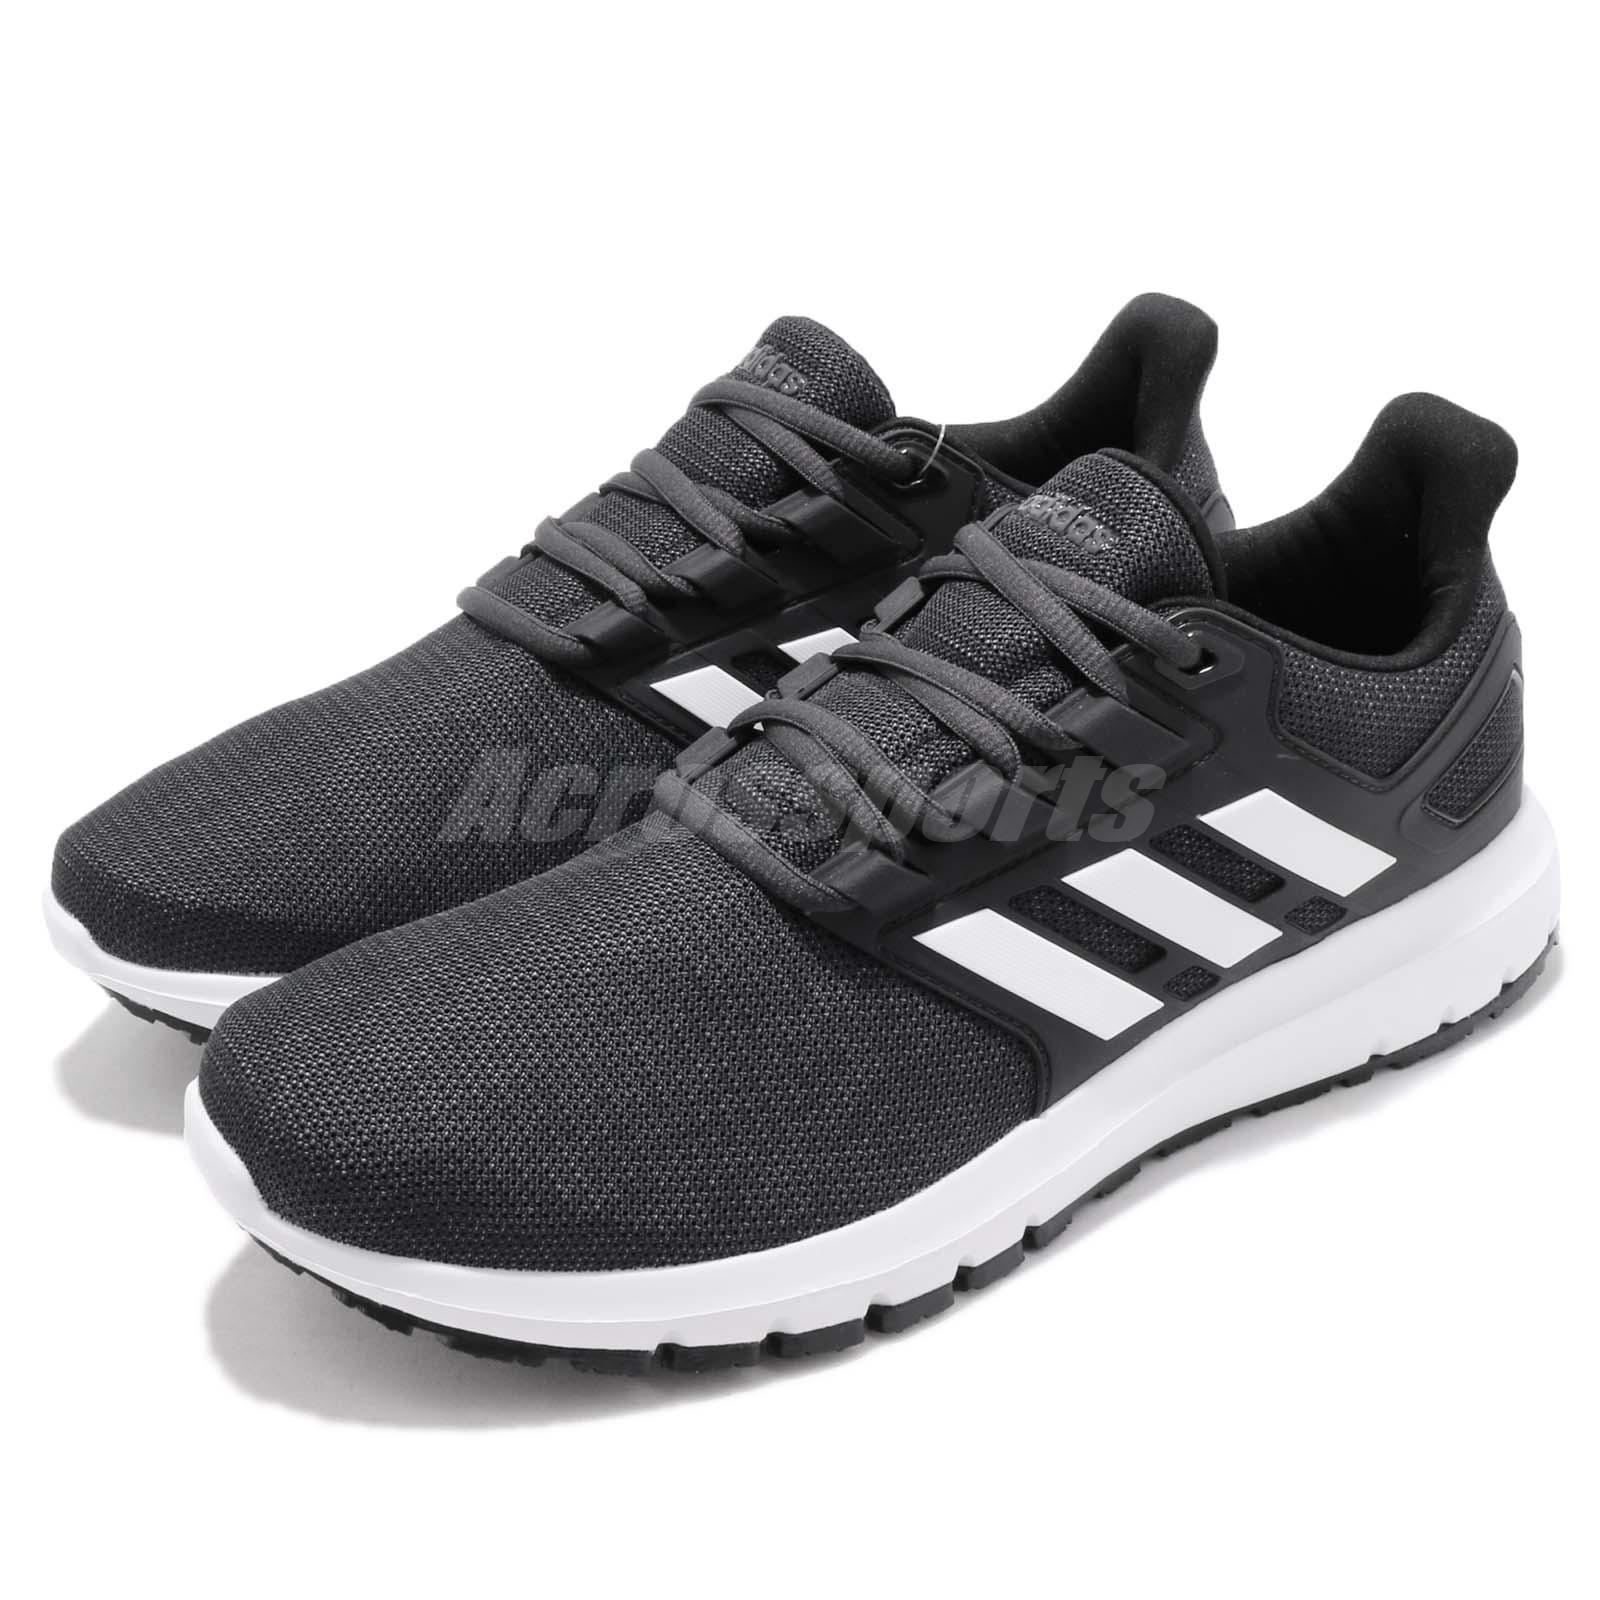 18181d91c8e Details about adidas Energy Cloud 2 II Black White Carbon Men Running Shoes  Sneakers B44750